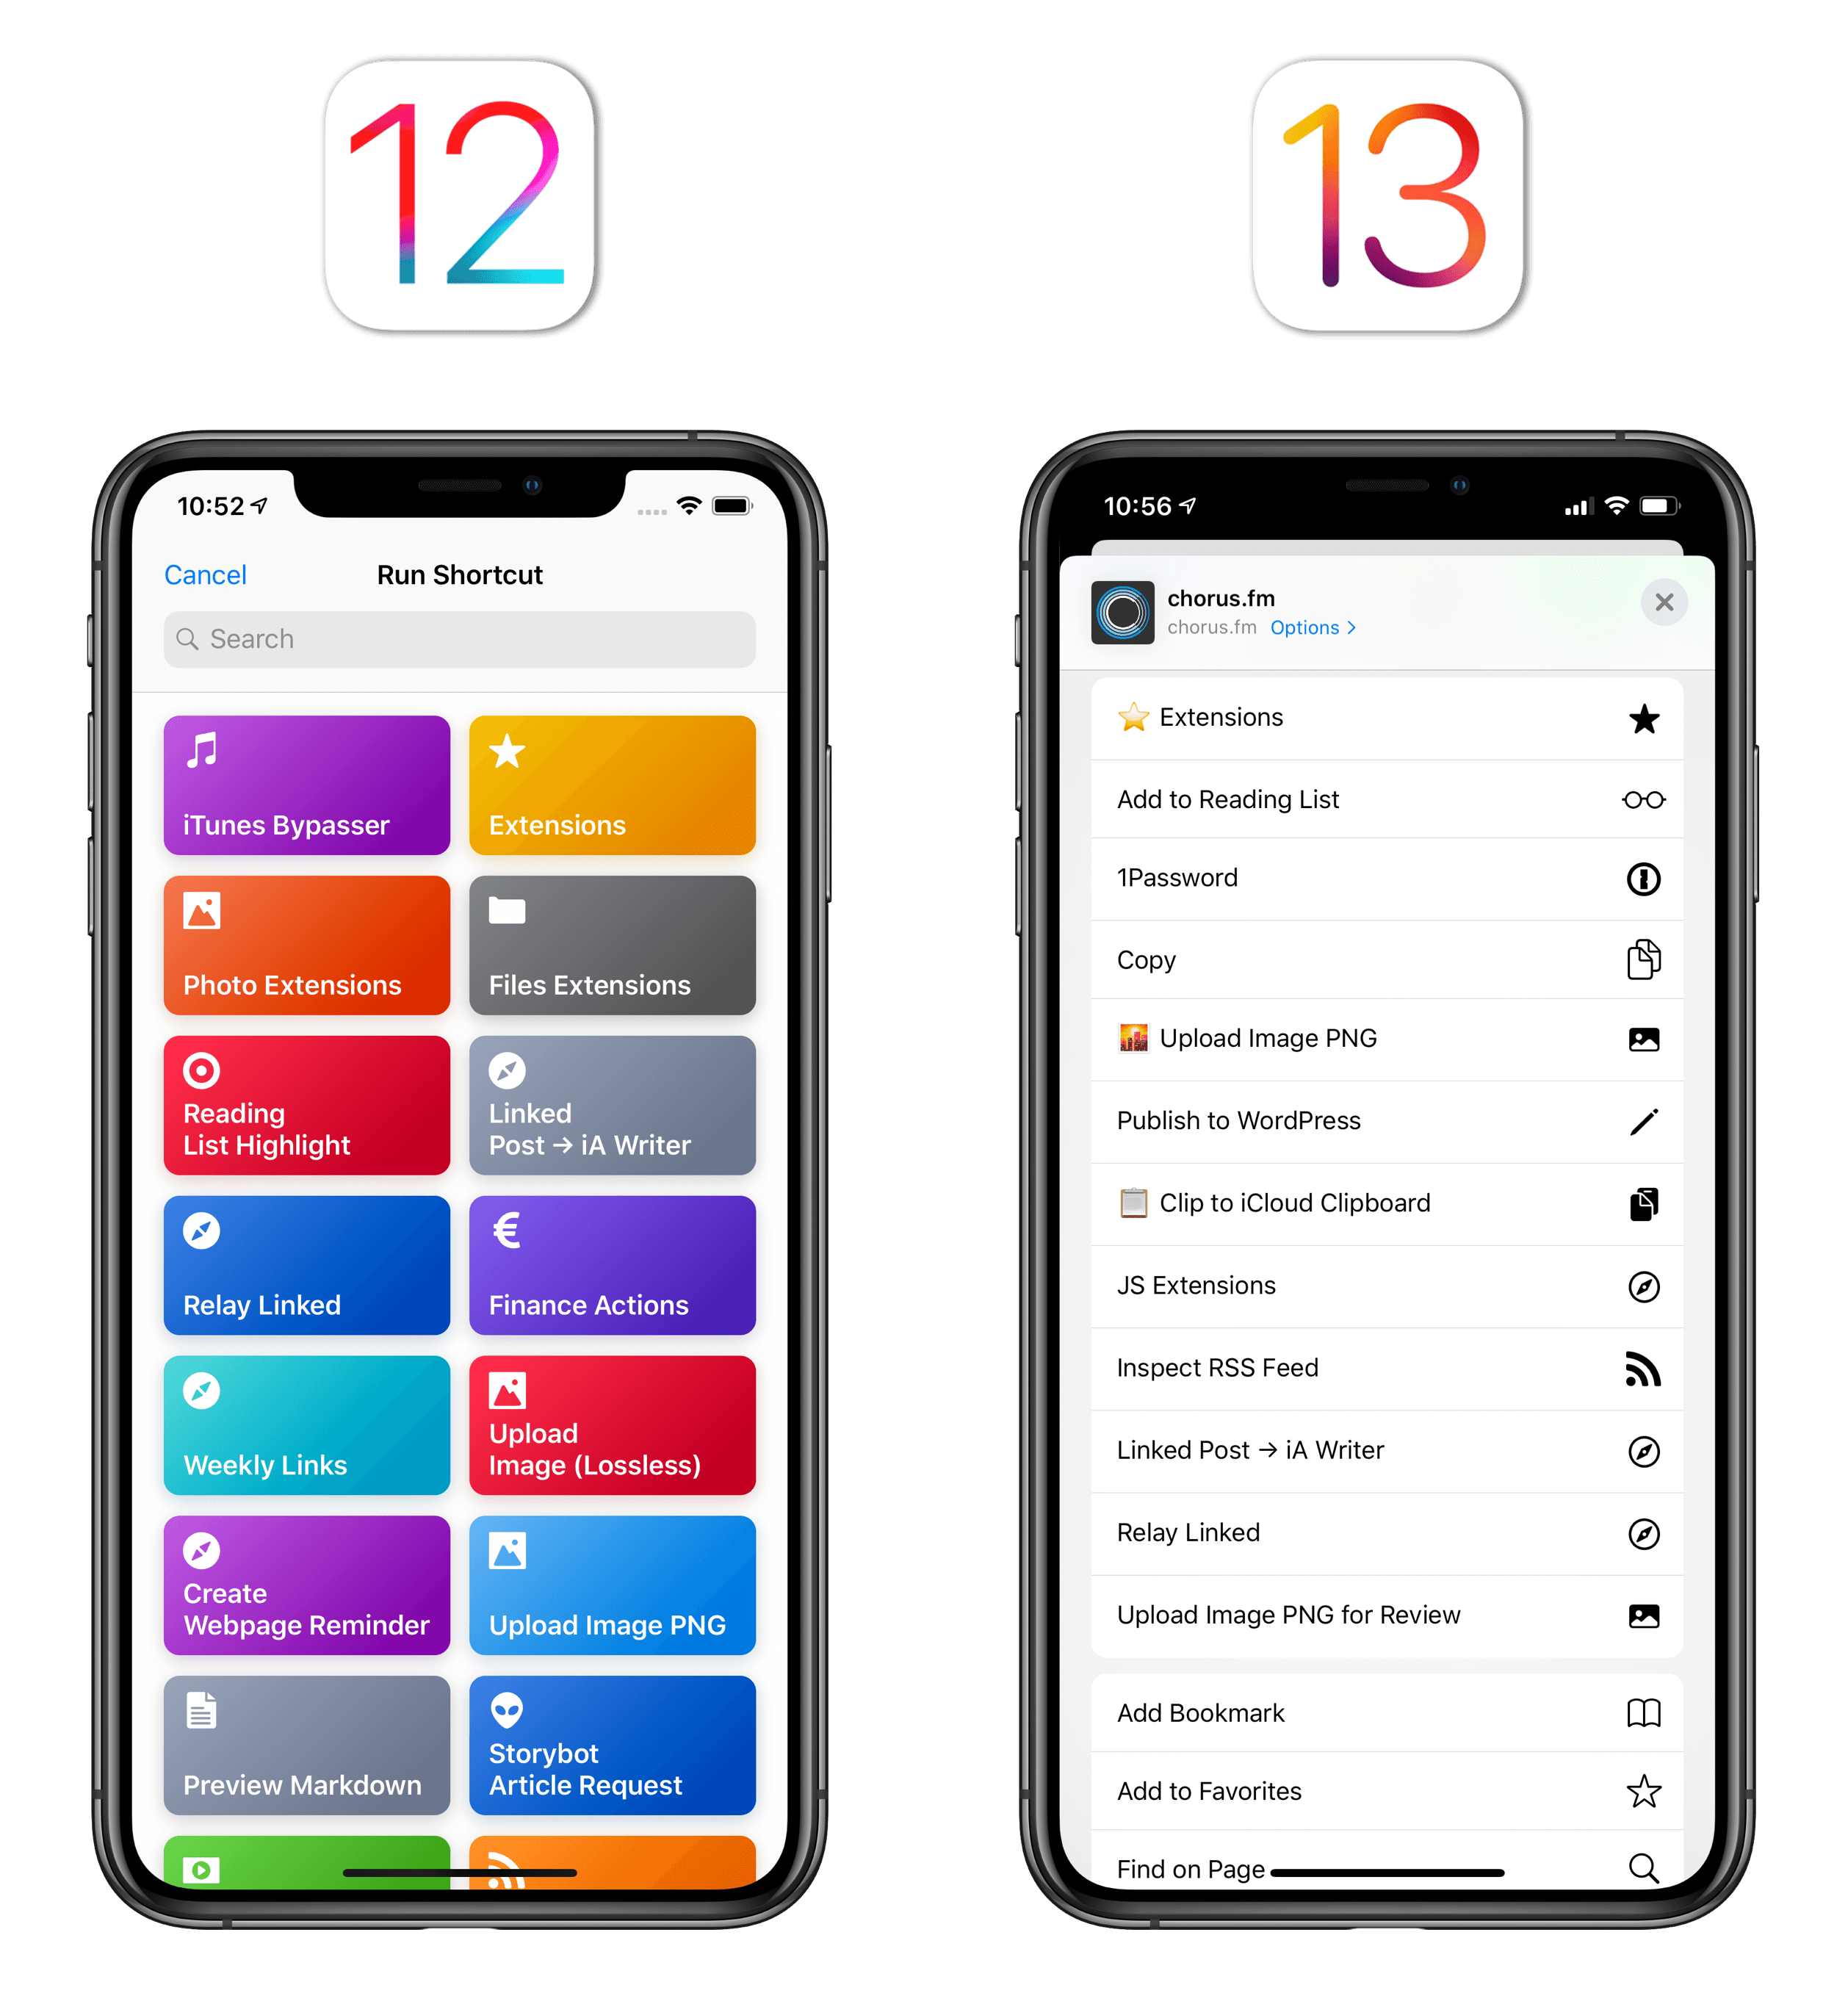 In iOS 12, you had to open a separate extension to view your shortcuts. In iOS 13, your shortcuts are top-level items that can be intermixed with other actions.